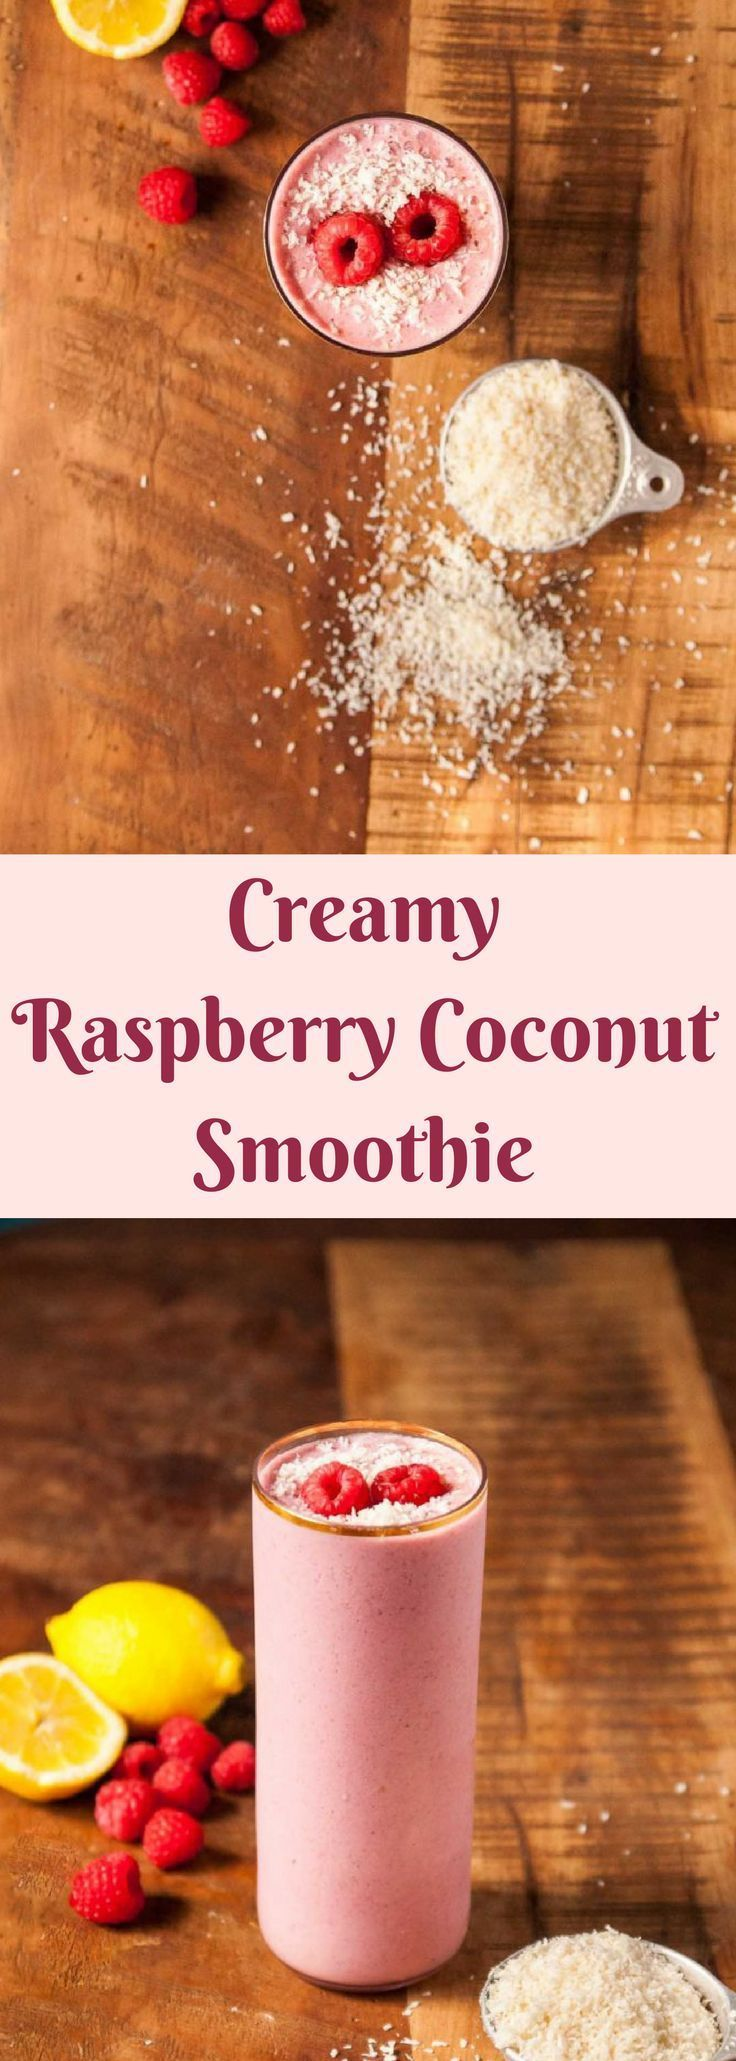 A creamy and dreamy vegan raspberry coconut smoothie, with a dose of cashews and the summer's best red raspberries!